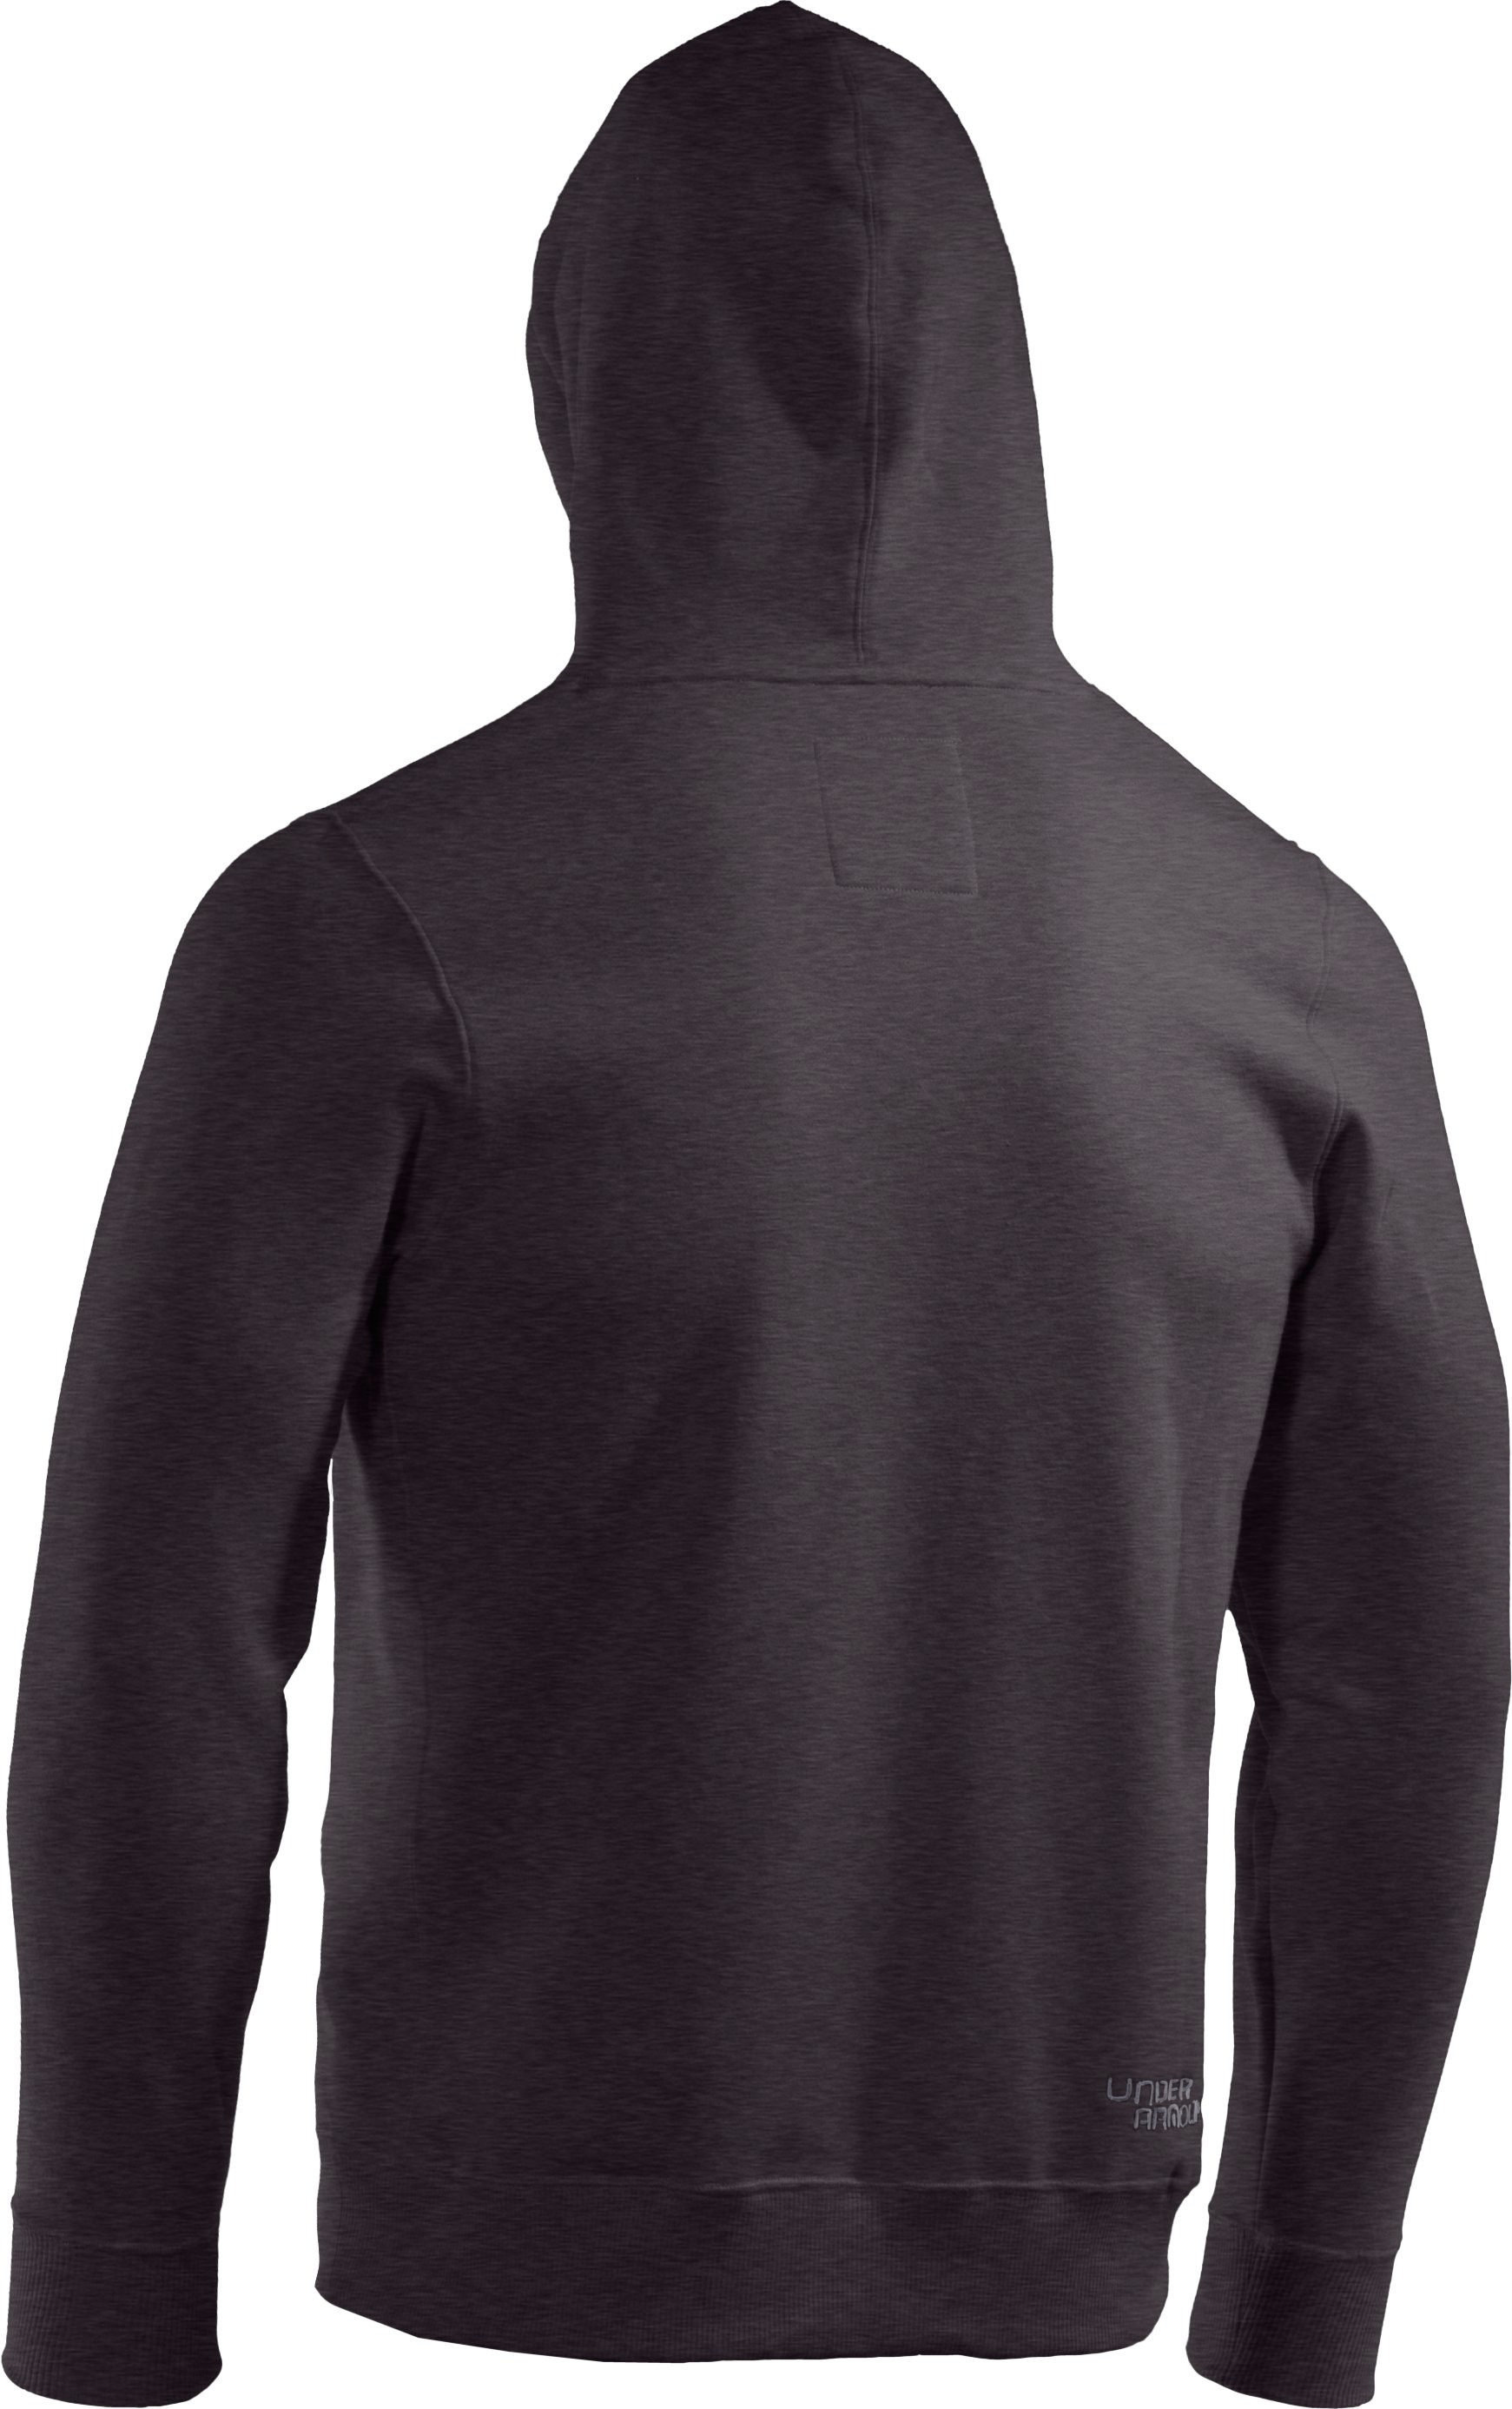 Men's Charged Cotton® Storm Pullover Hoodie, Carbon Heather,